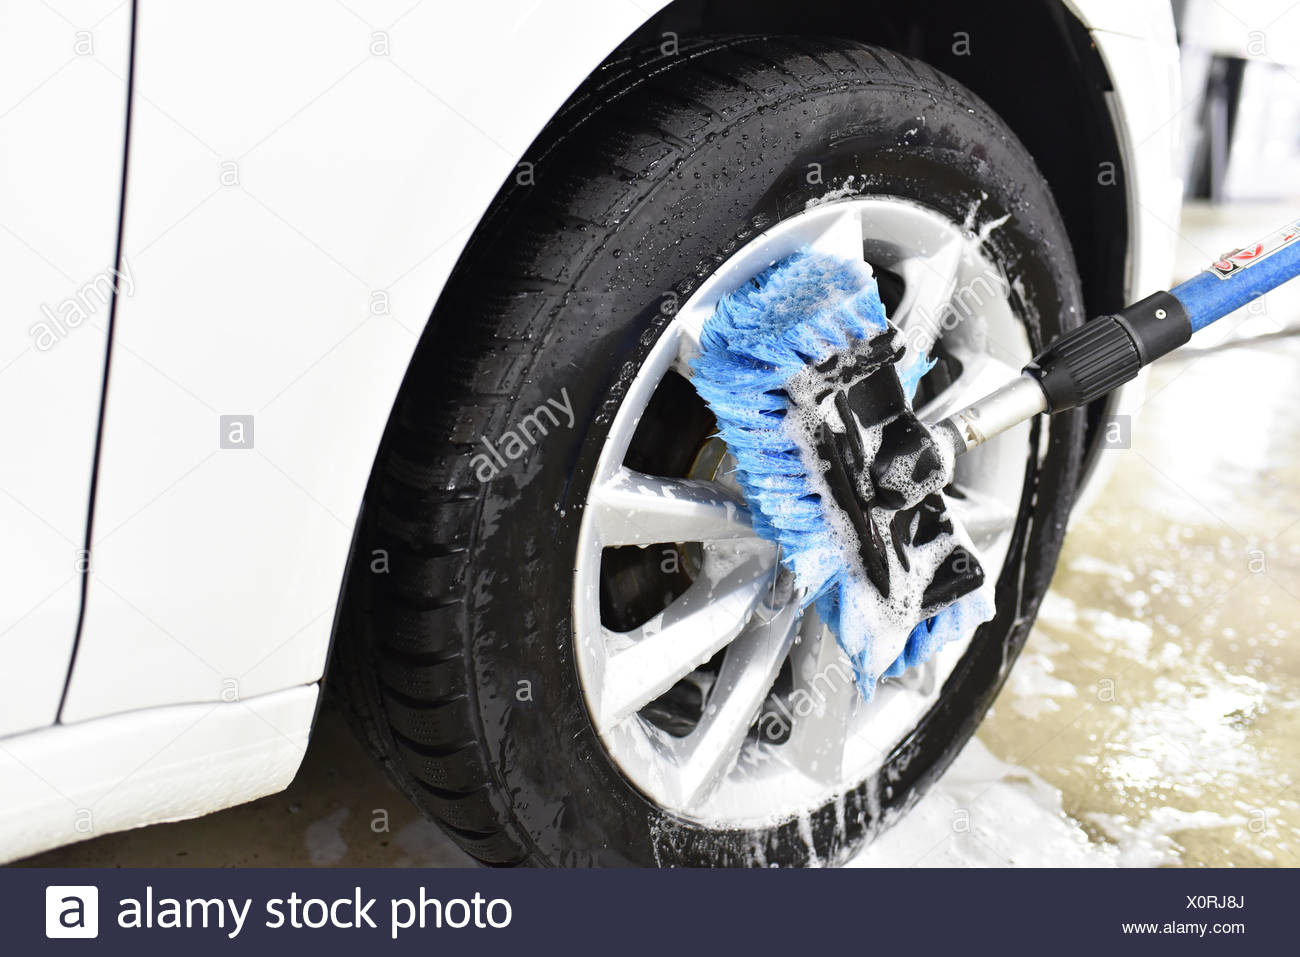 Car cleaning, cleaning the alloy wheel - Stock Image